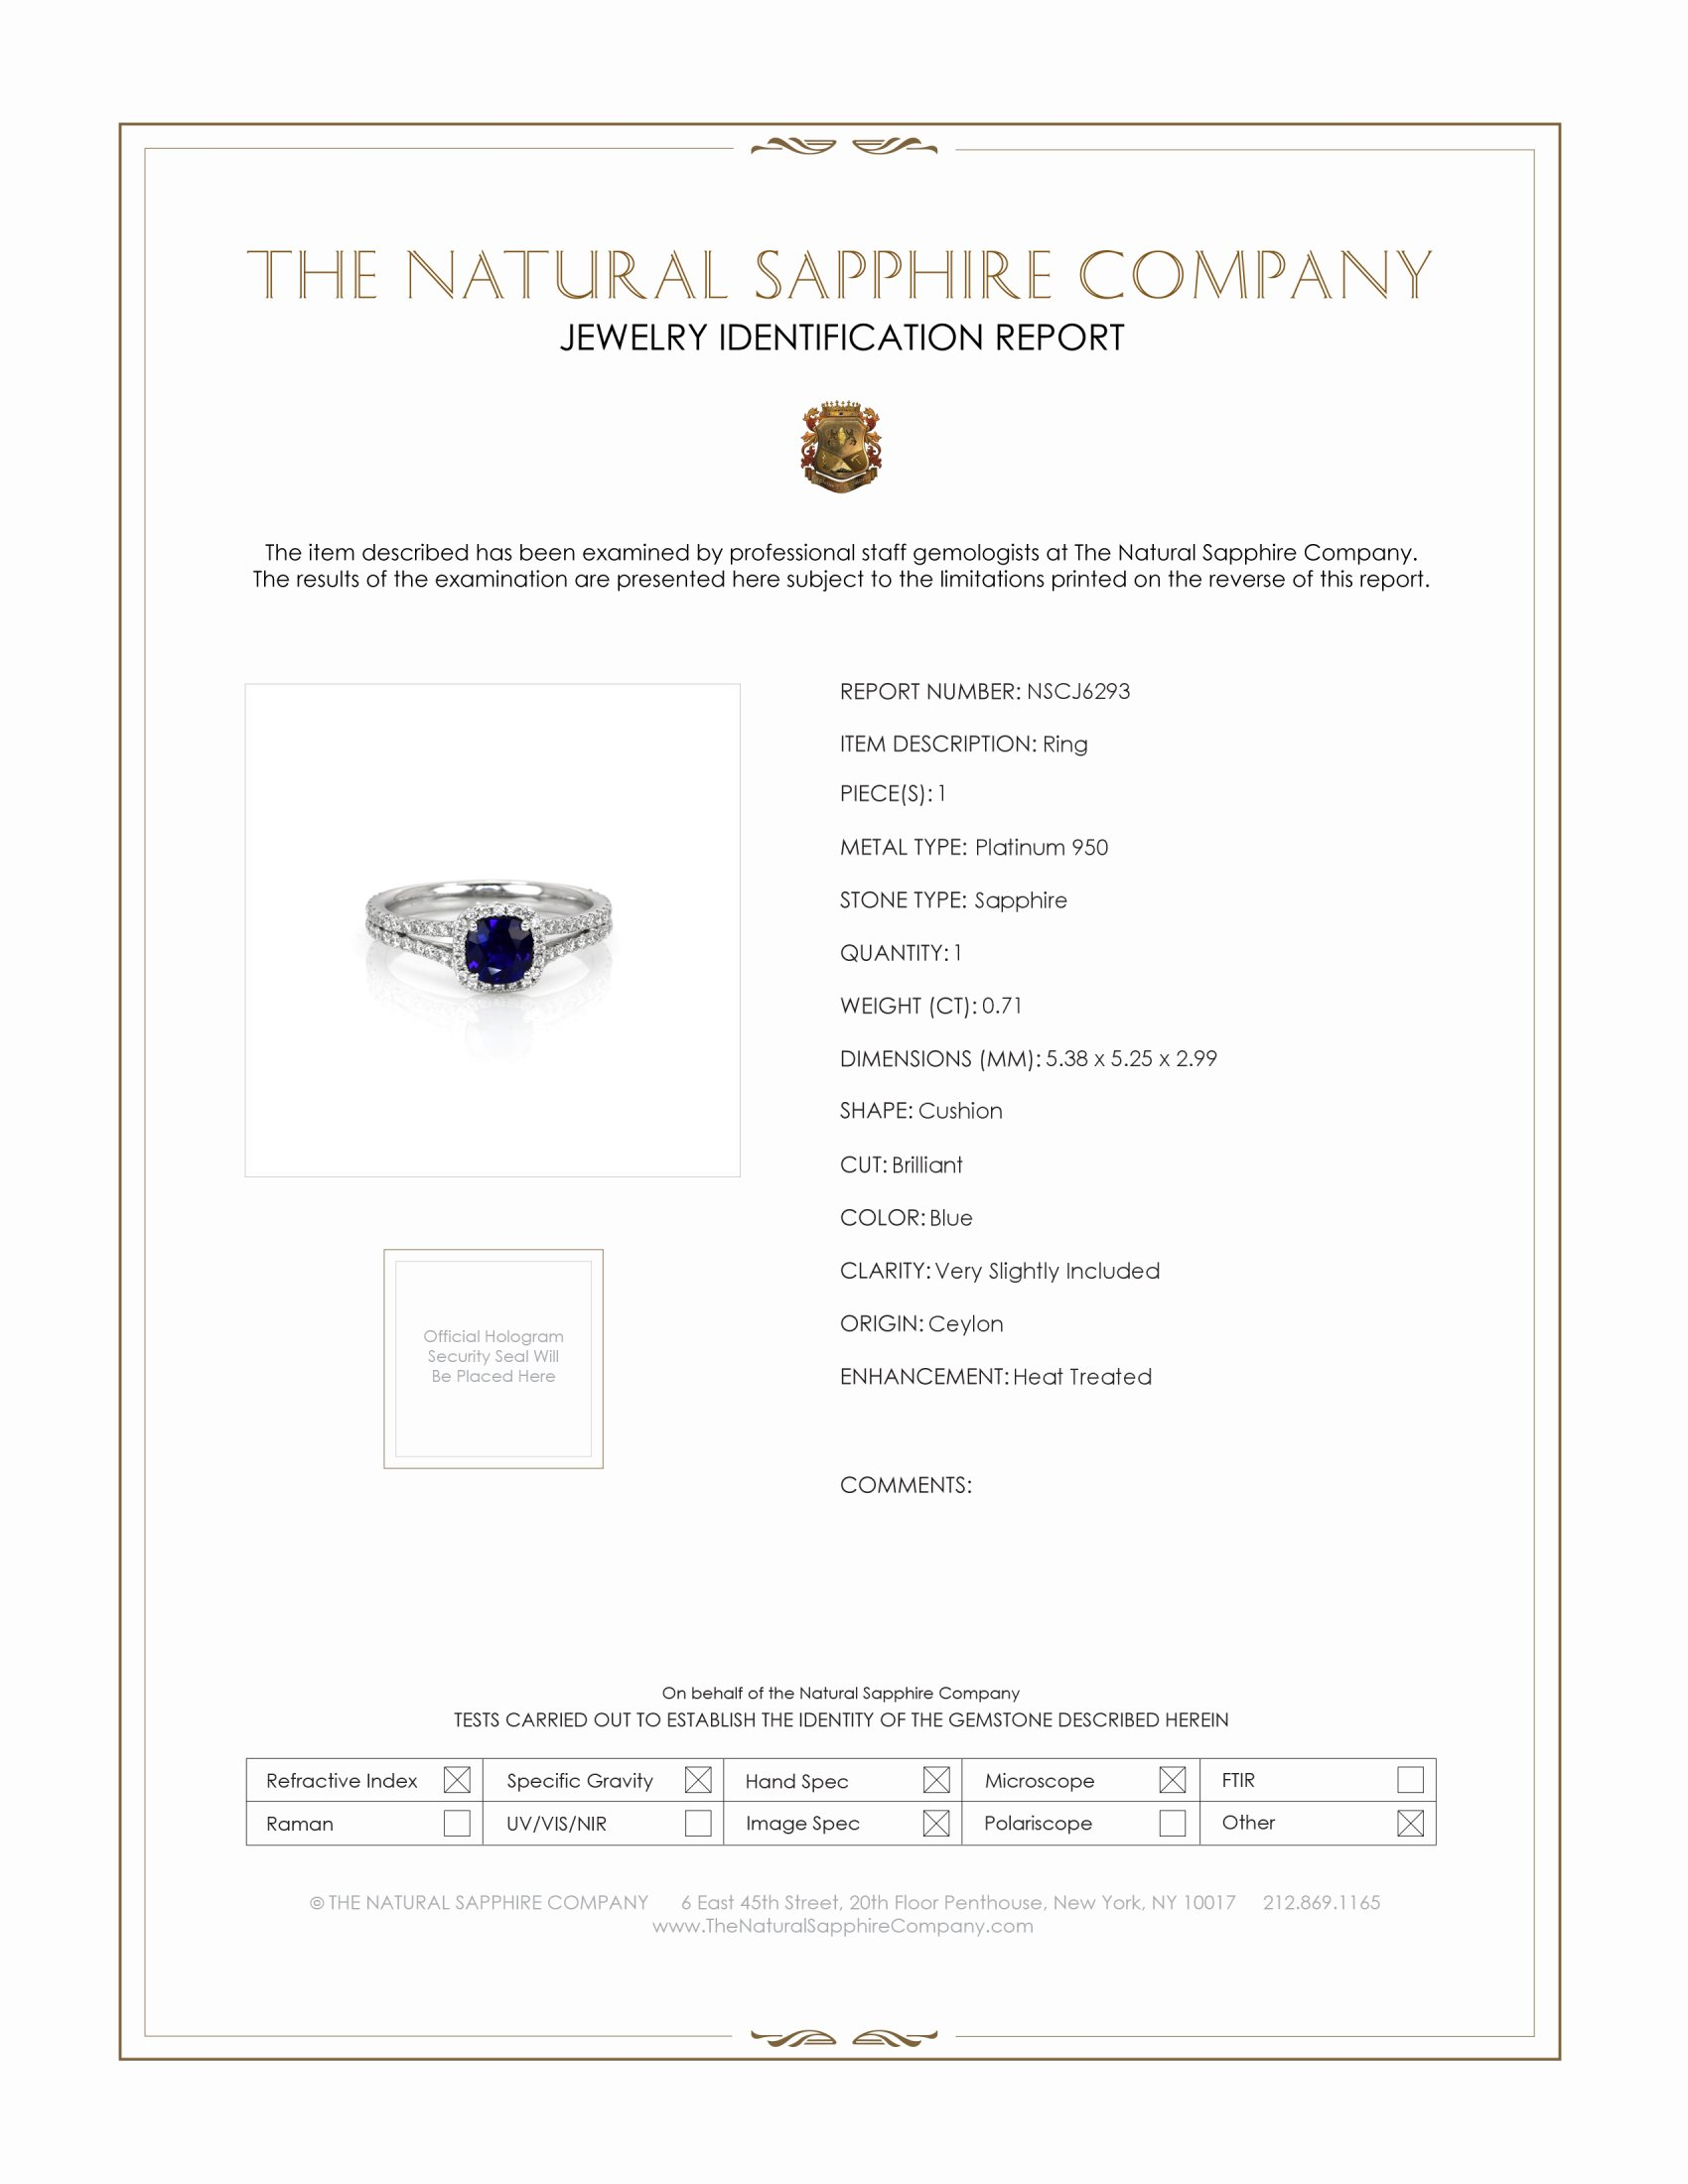 0.71ct Blue Sapphire Ring Certification